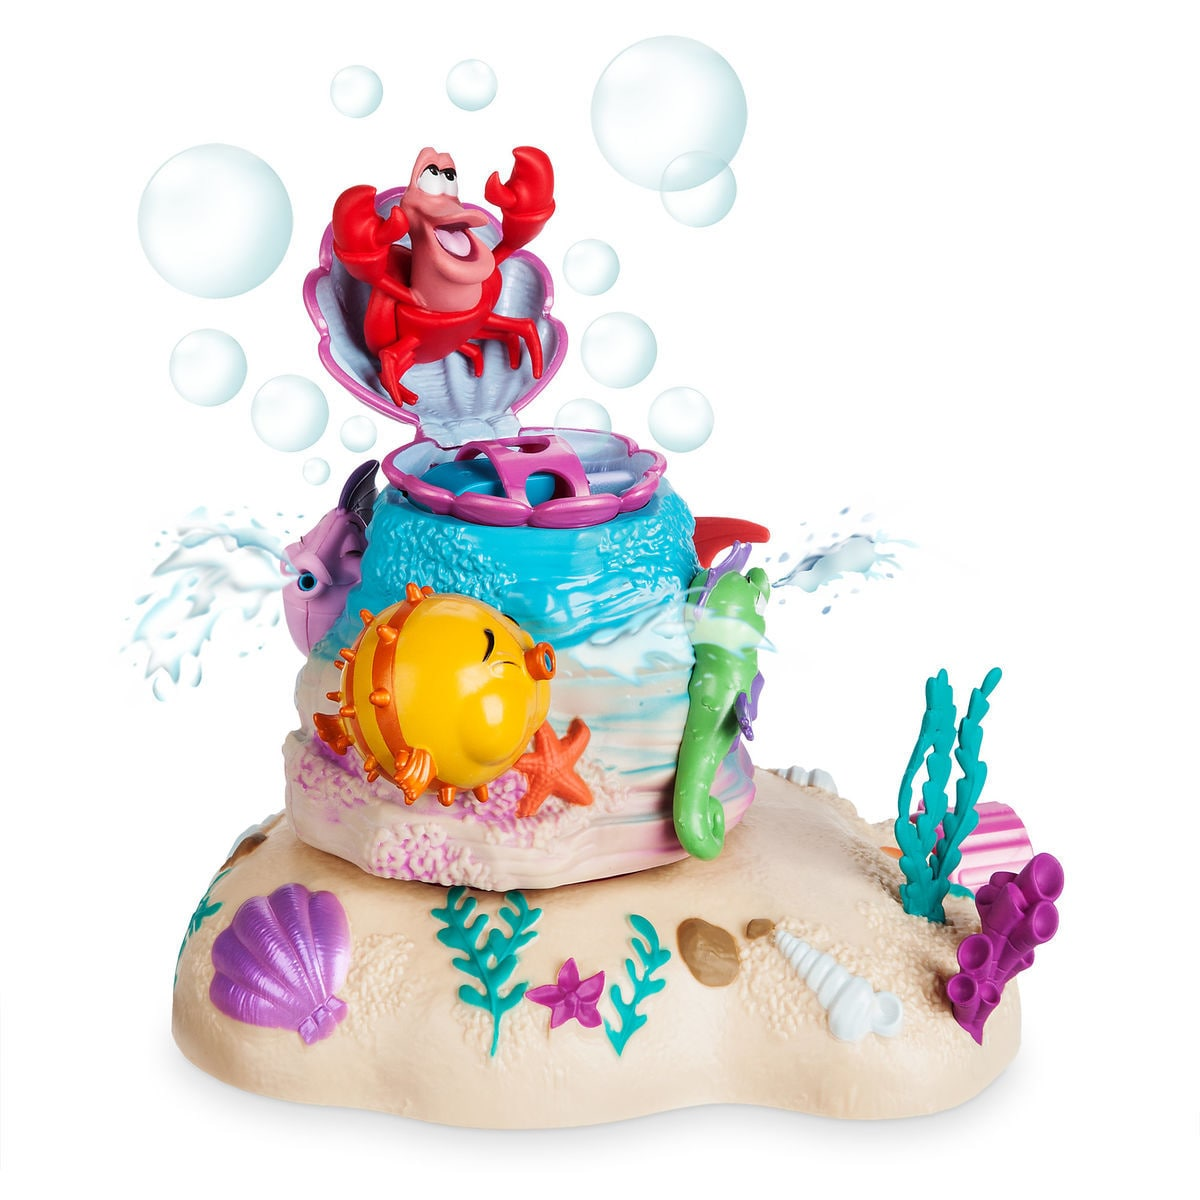 Product Image of Sebastian Bubbles and Splash Sprinkler Play Set - The Little Mermaid # 1